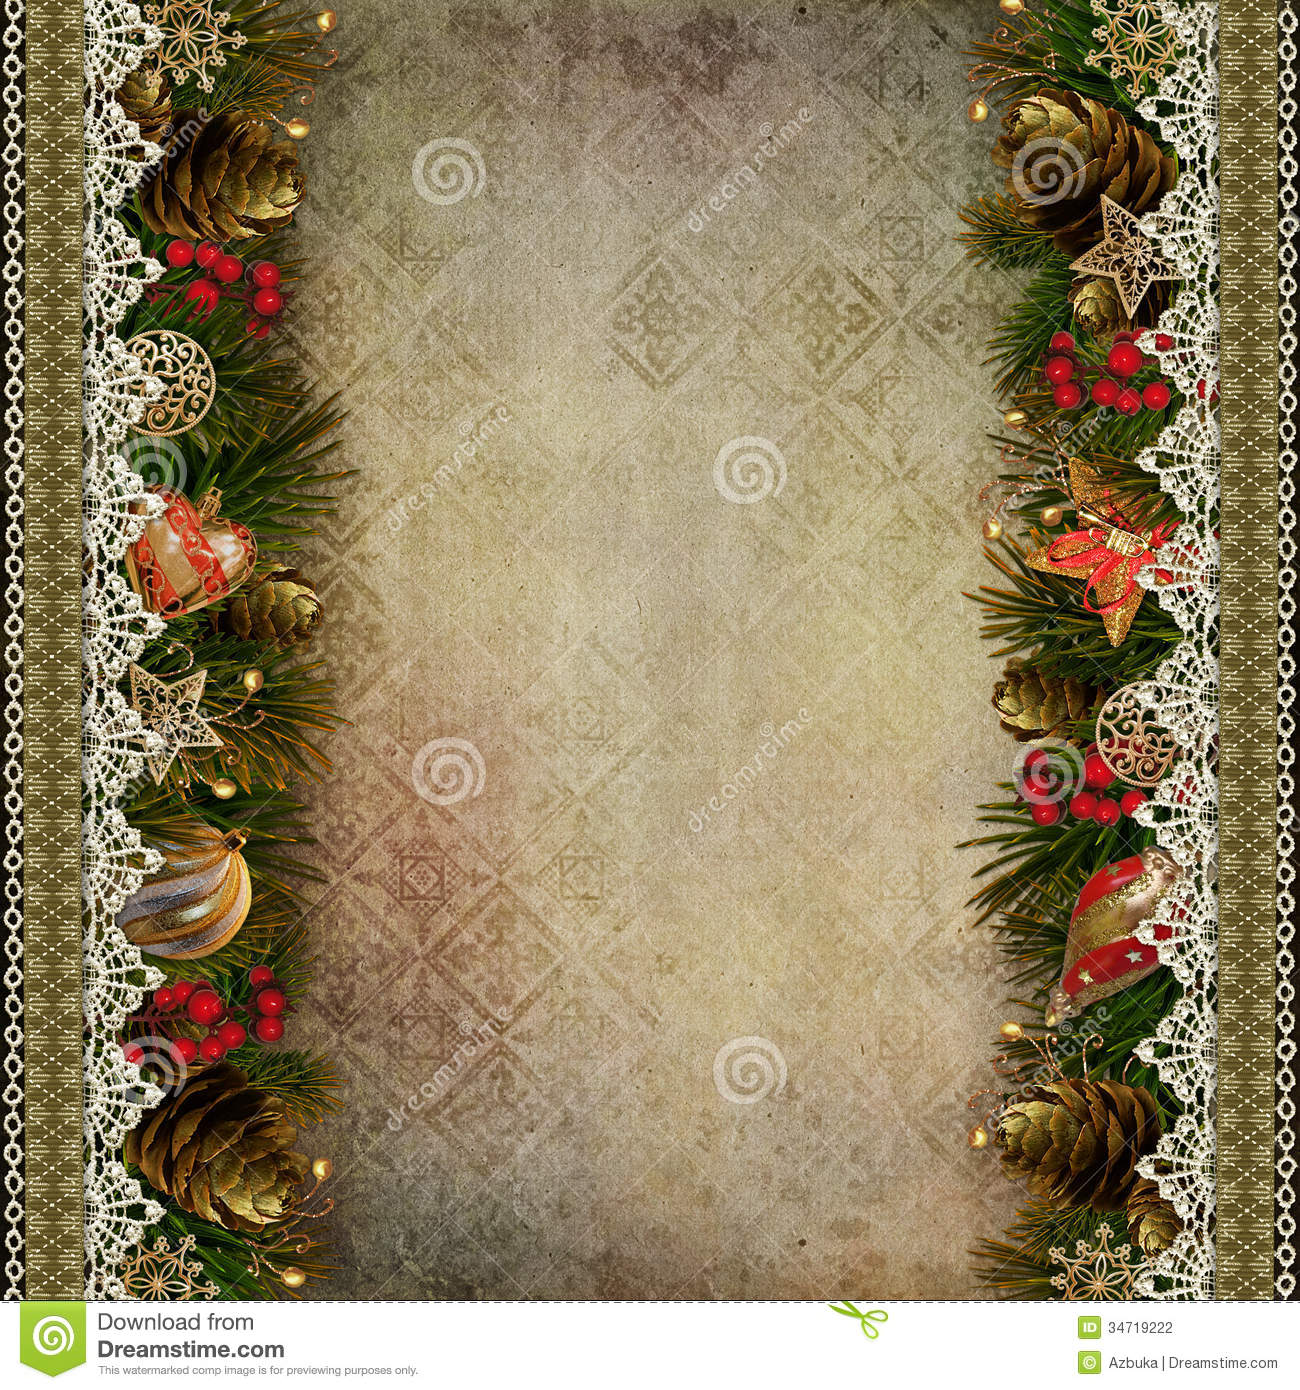 Vintage Background With Lace Borders Stock Vector - Image: 68935843